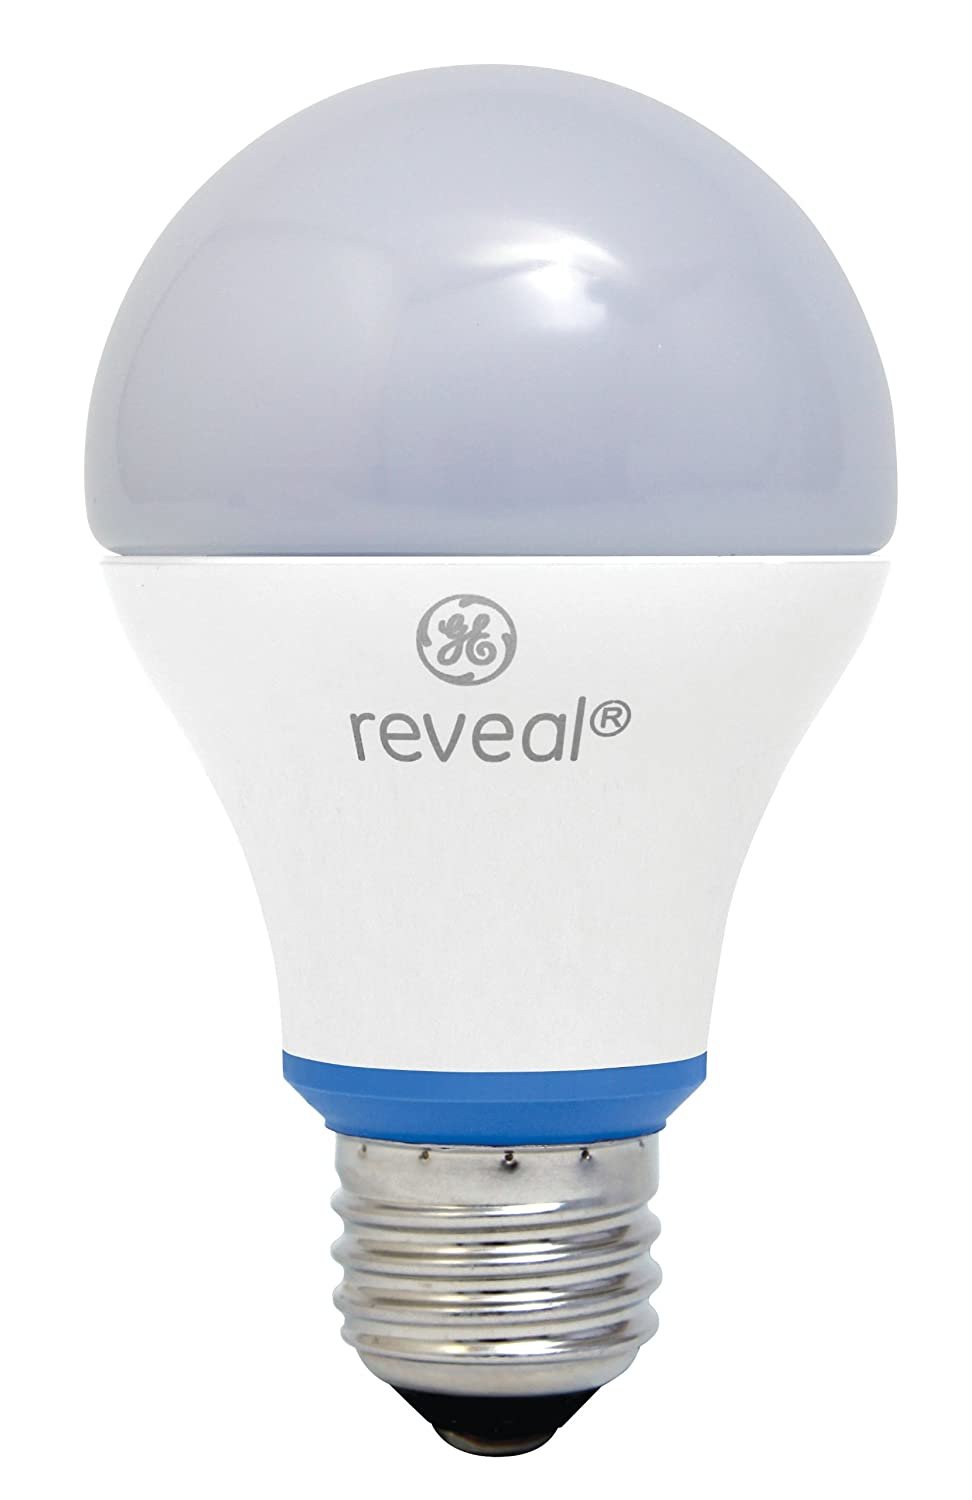 GE Lighting 69220 Reveal LED 8-Watt (40-watt equivalent) 360-Lumen A19 Dimming Light Bulb with Medium Base - Led Household Light Bulbs - Amazon.com  sc 1 st  Amazon.com & GE Lighting 69220 Reveal LED 8-Watt (40-watt equivalent) 360-Lumen ... azcodes.com